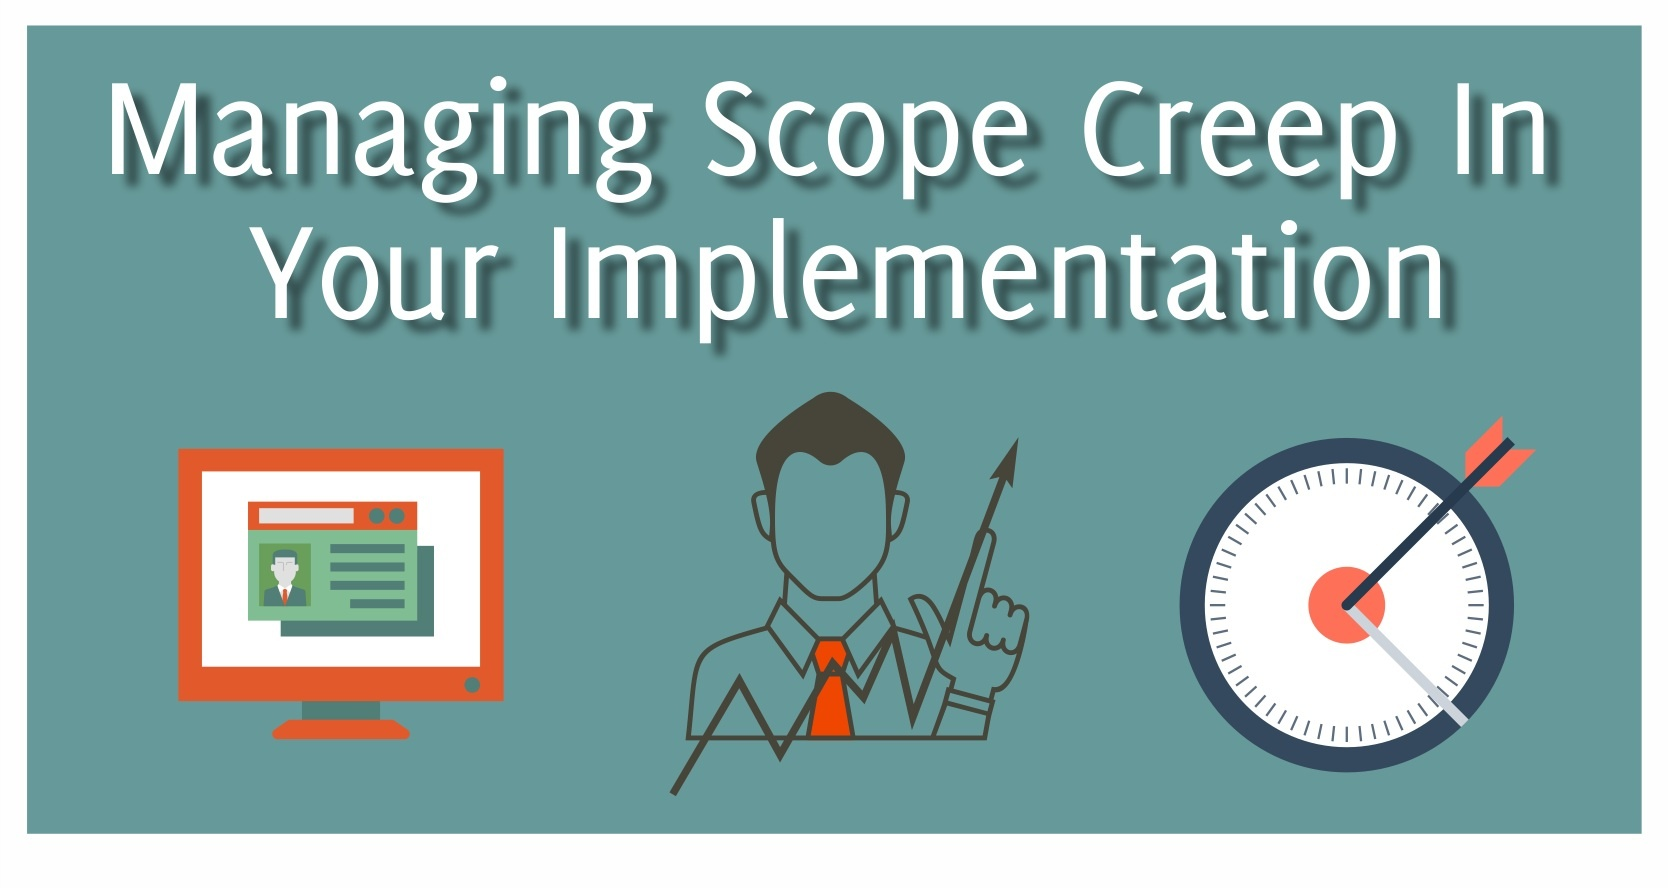 Managing Scope Creep In Your Implementation